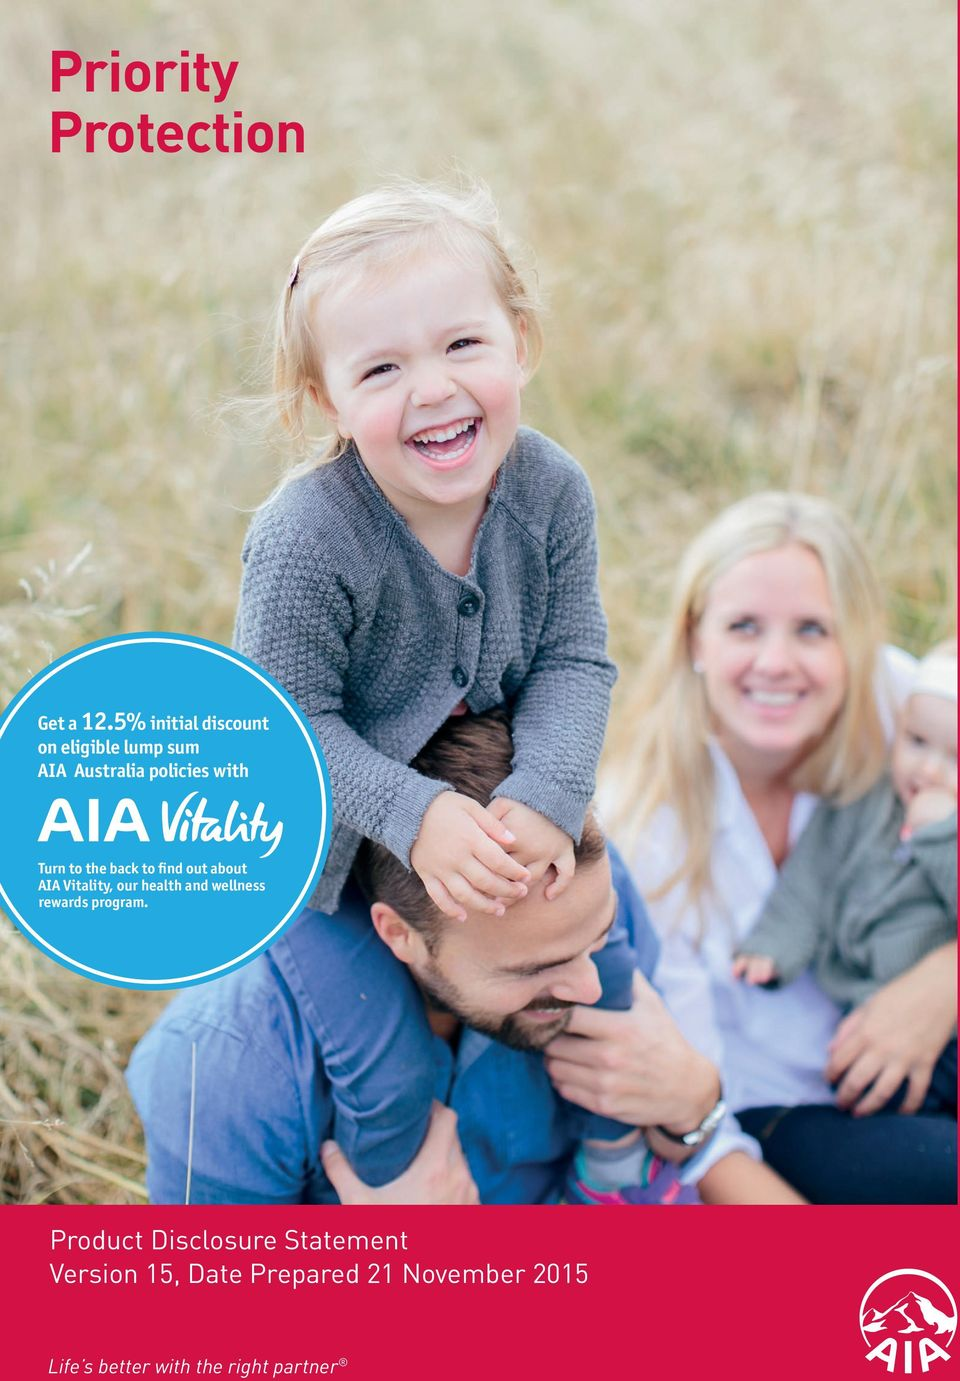 Turn to the back to find out about AIA Vitality, our health and